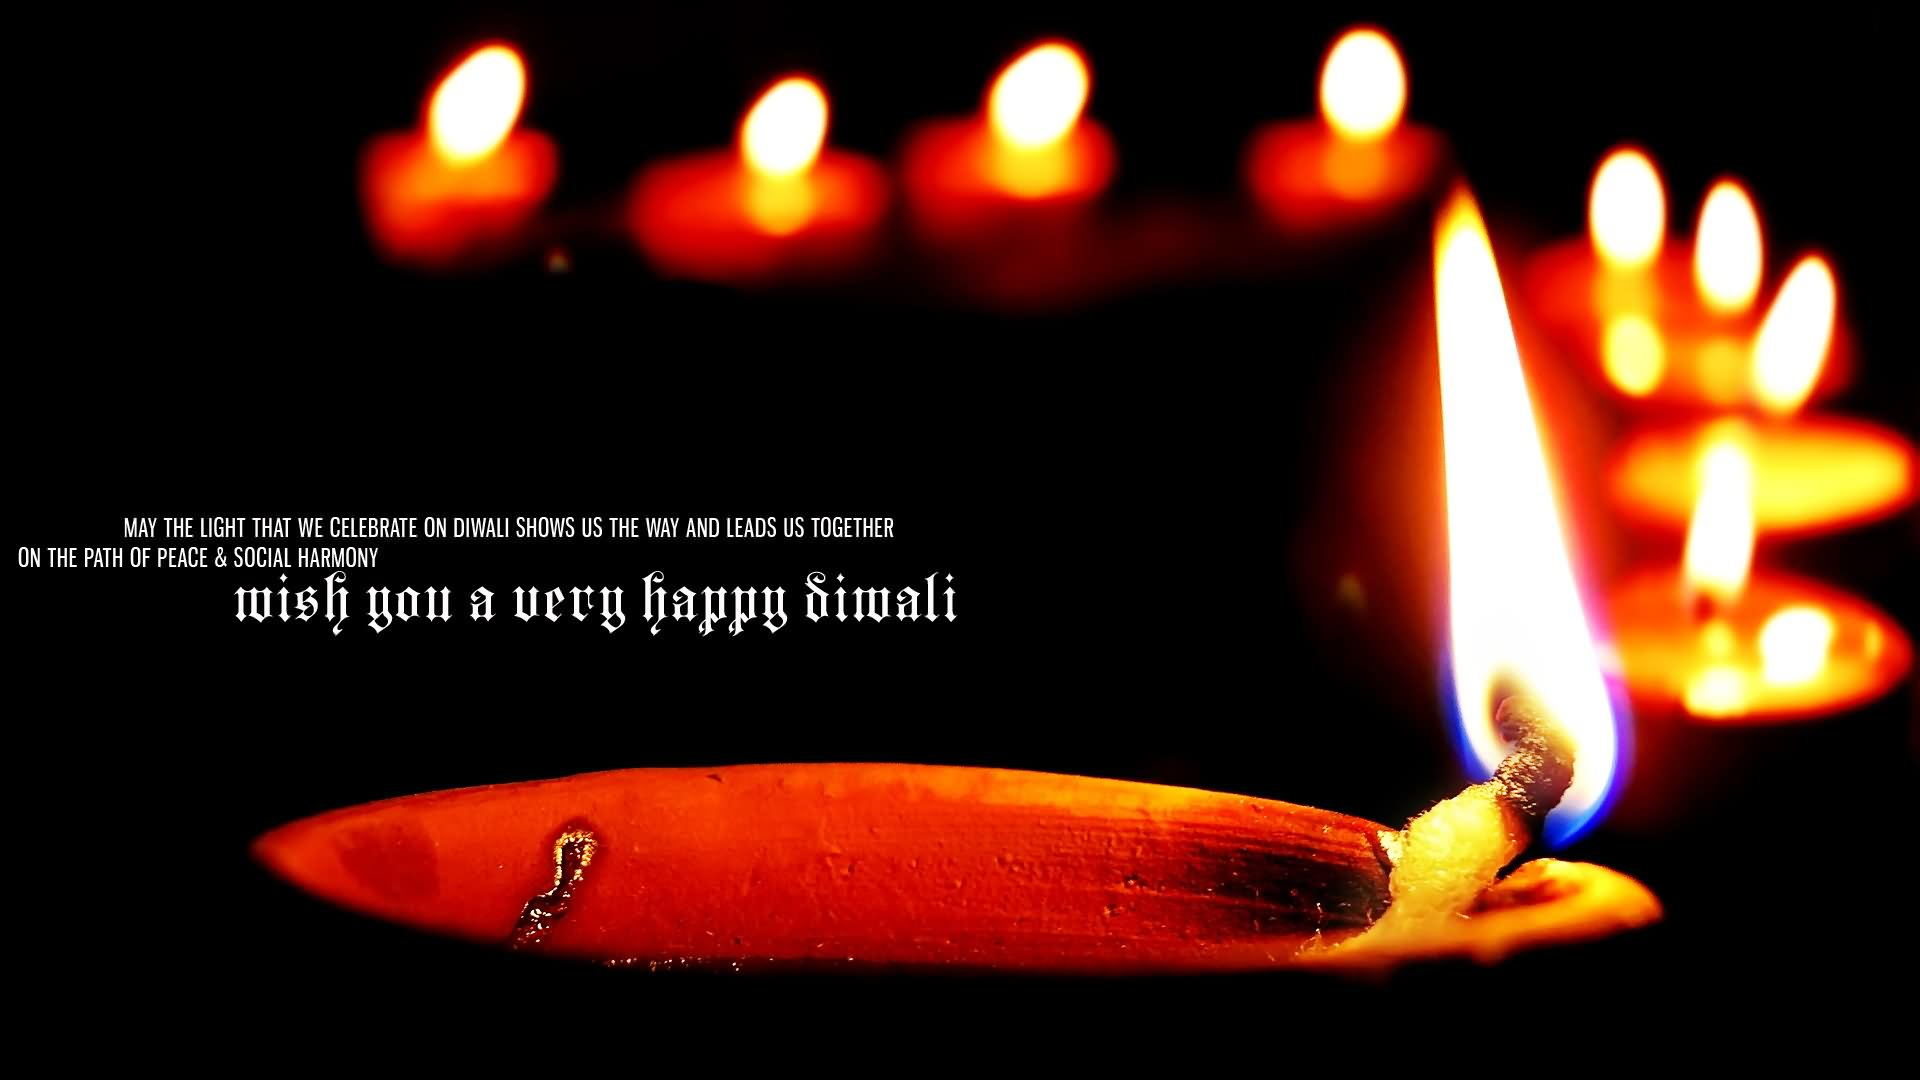 Animated Diwali Diya Wallpapers 20 Best Happy Diwali Greeting Images